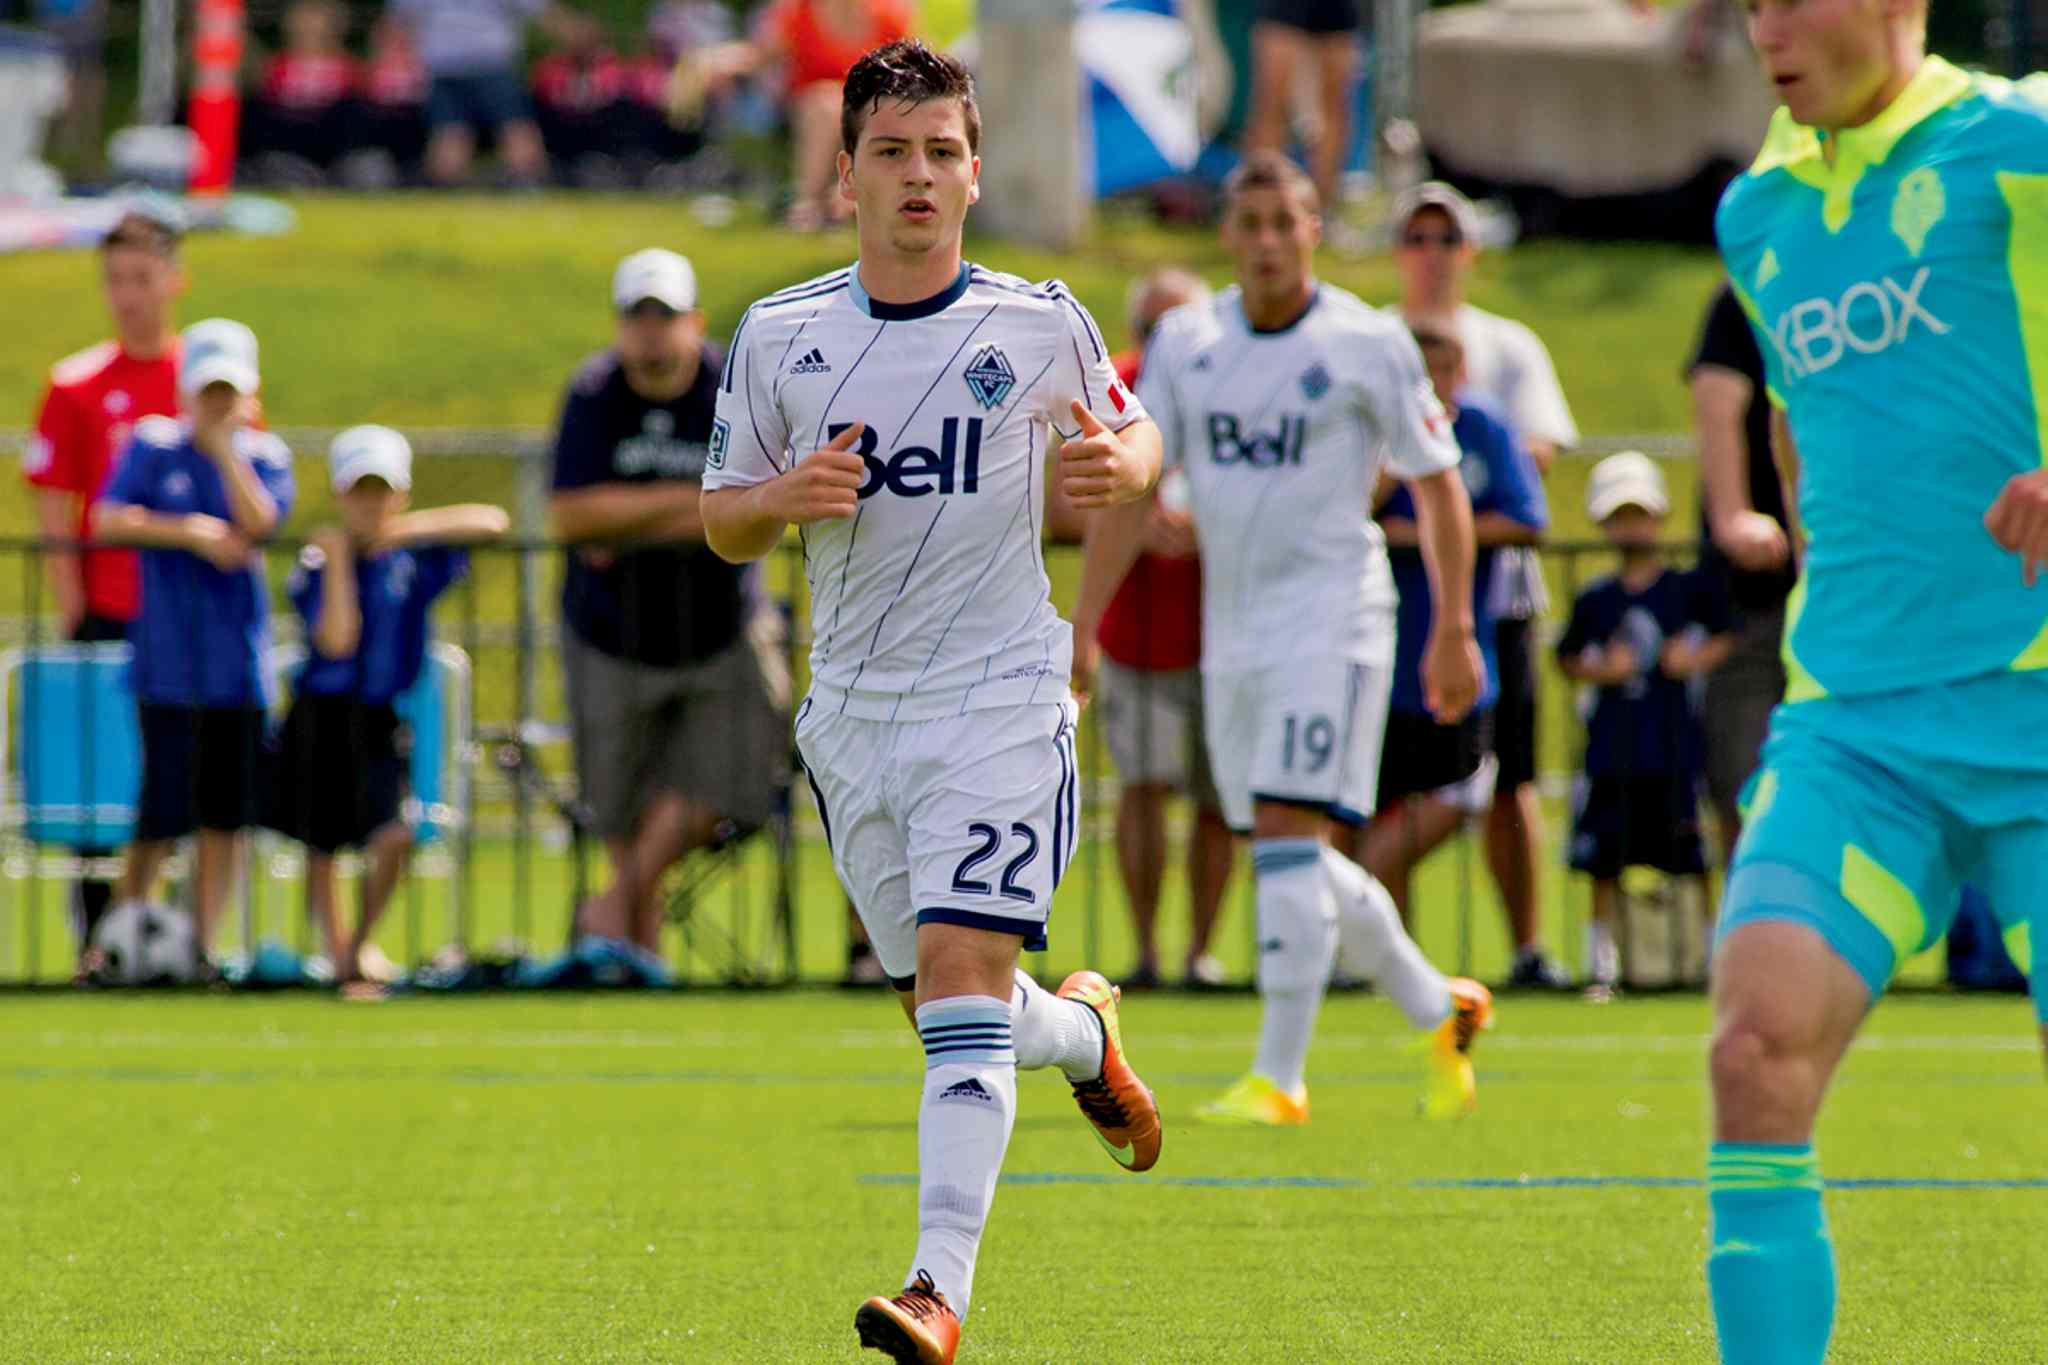 Vancouver Whitecaps midfielder Marco Bustos, who grew up in the Maples, in action against the Seattle Sounders. Bustos will play for Canada at the FIFA U-17 World Cup in UAE.